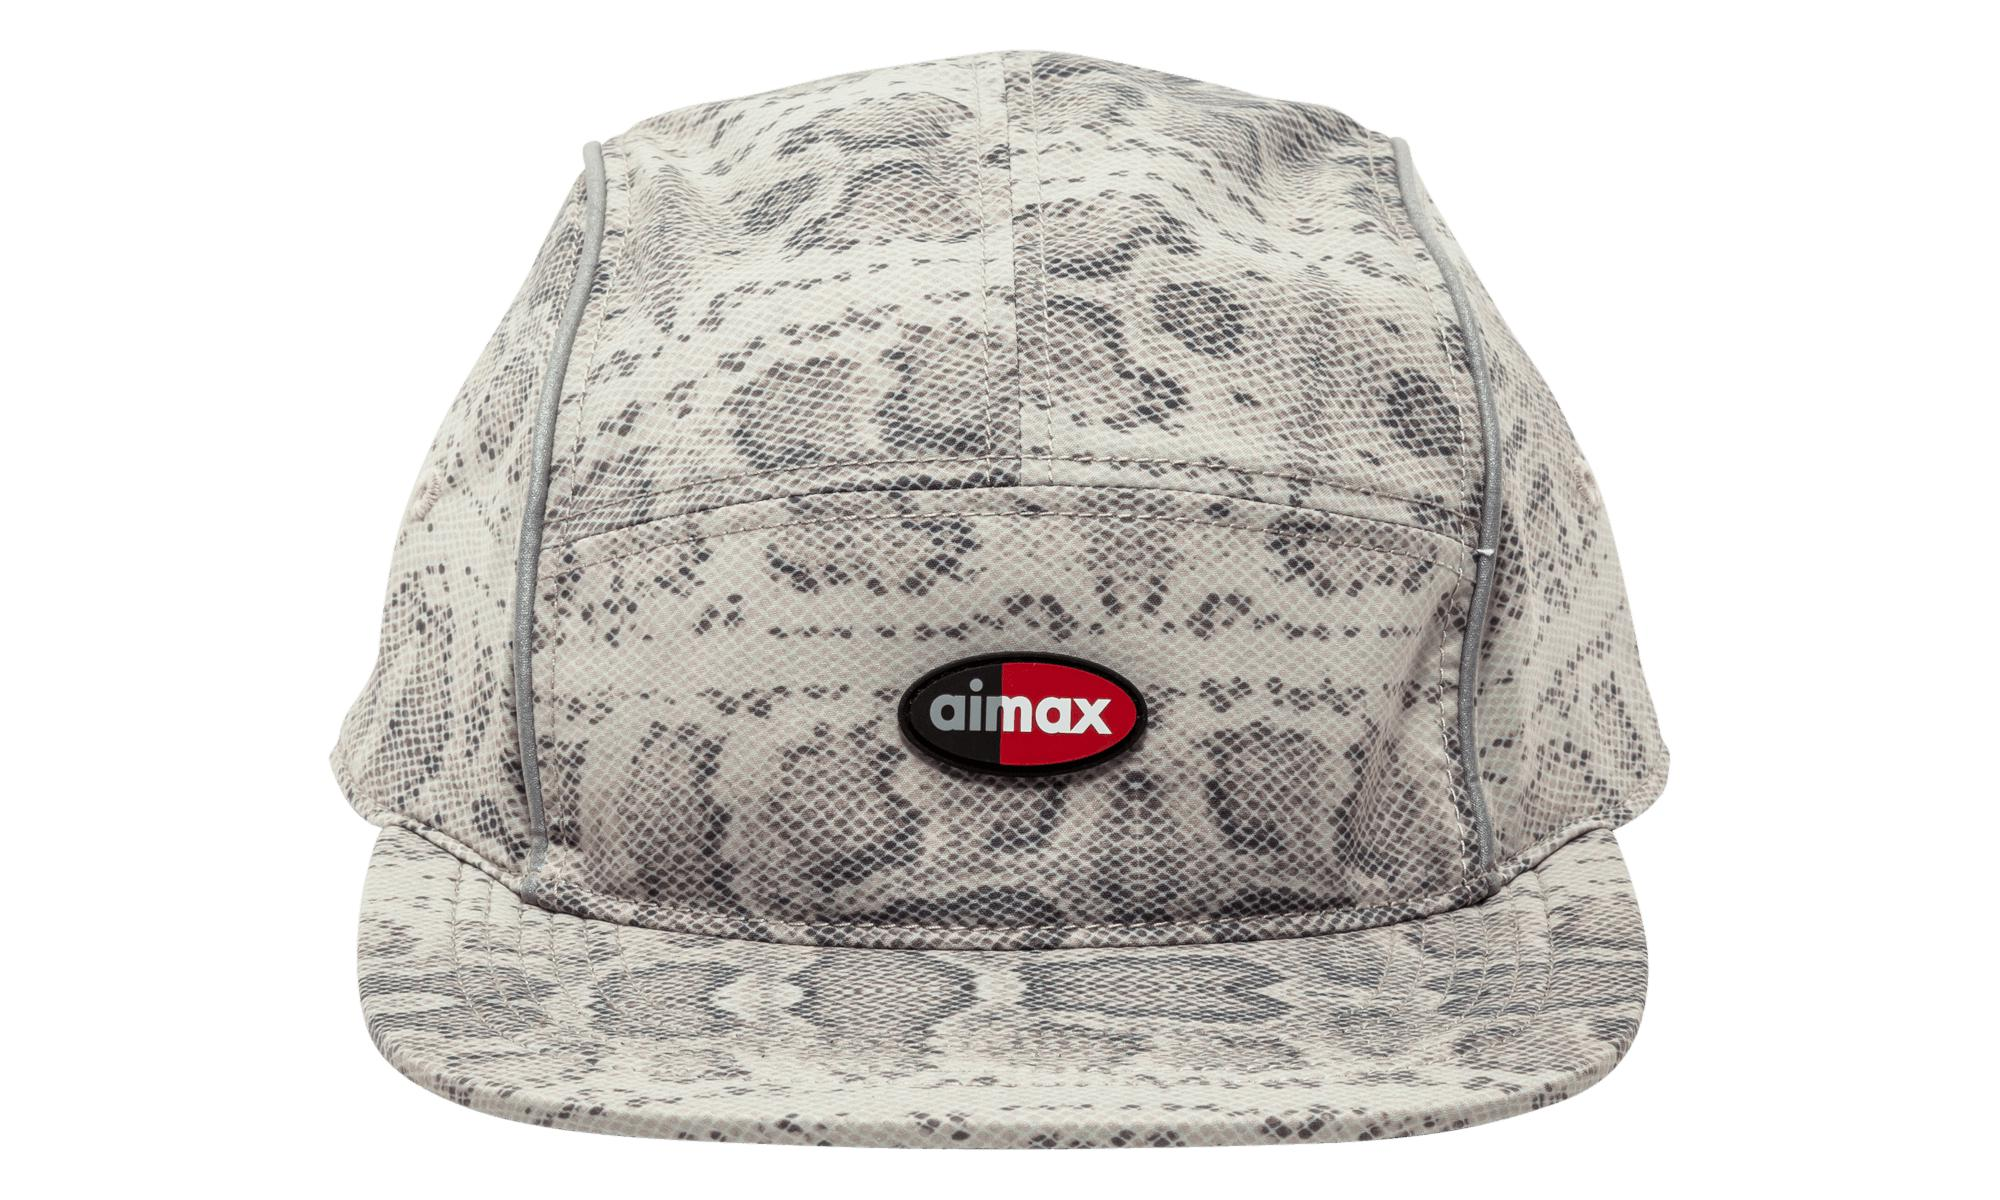 baa95ddecff Lyst - Supreme Air Max Running Hat in Gray for Men - Save 6%